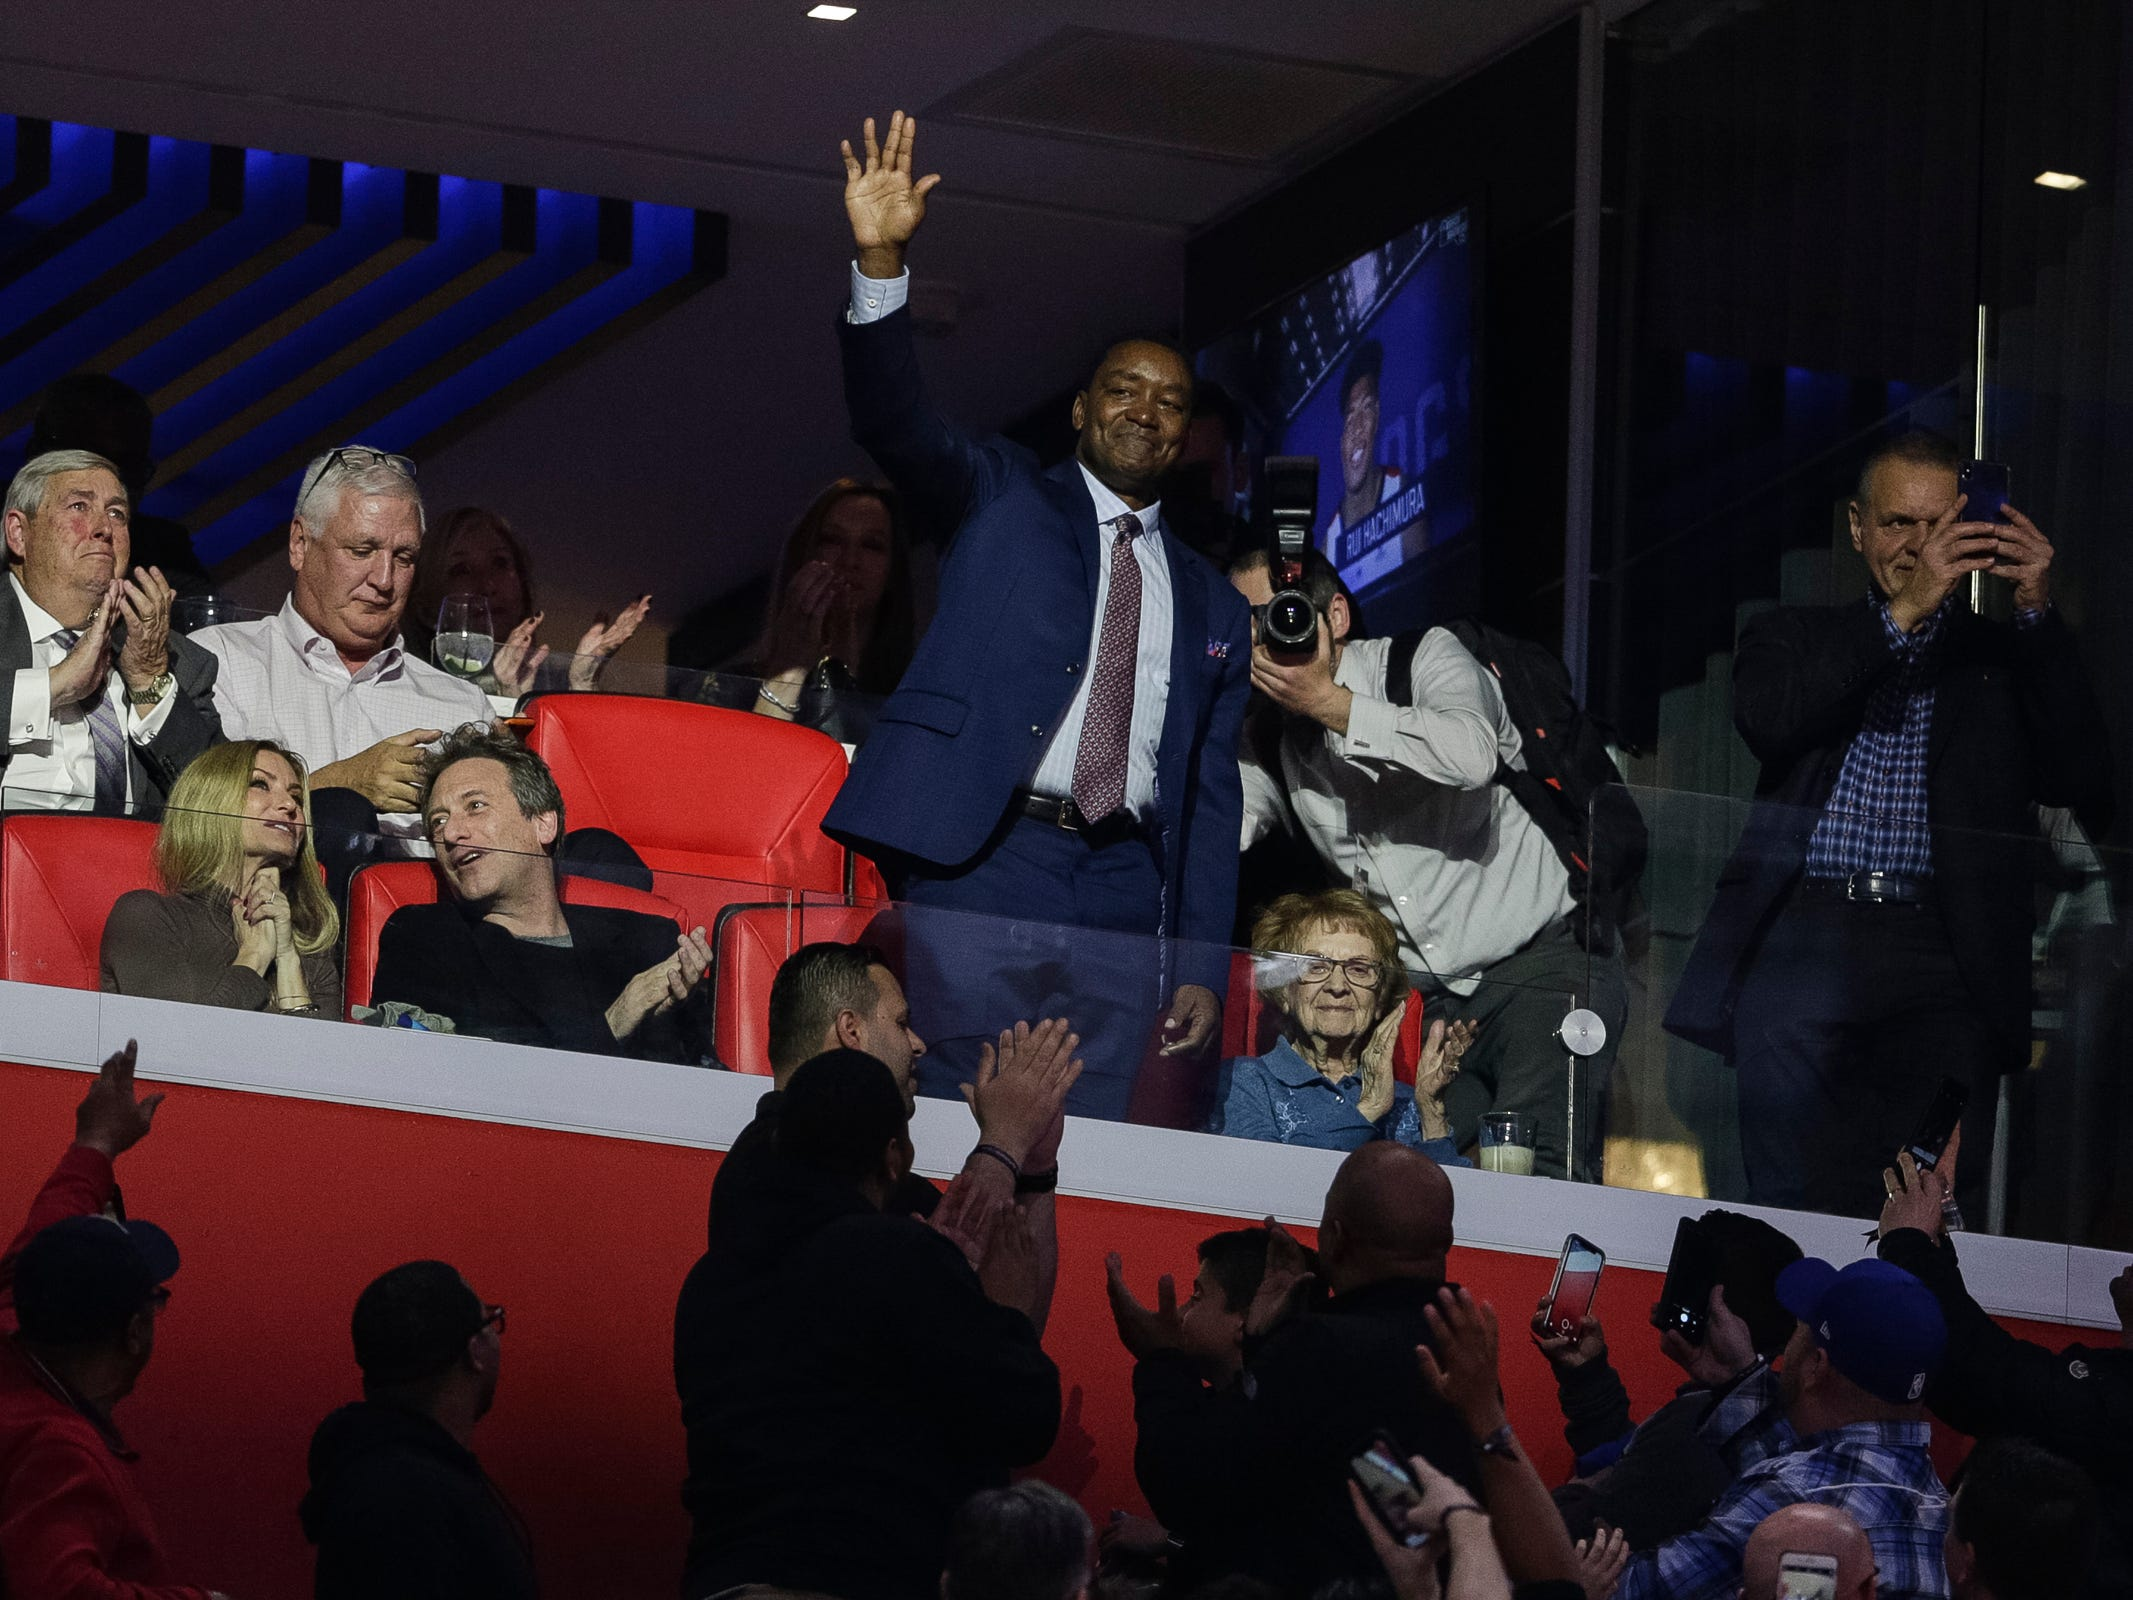 Isiah Thomas waves at the fans as he's been introduced during the first half of Pistons-Trail Blazers game at the Little Caesars Arena in Detroit, Saturday, March 30, 2019.